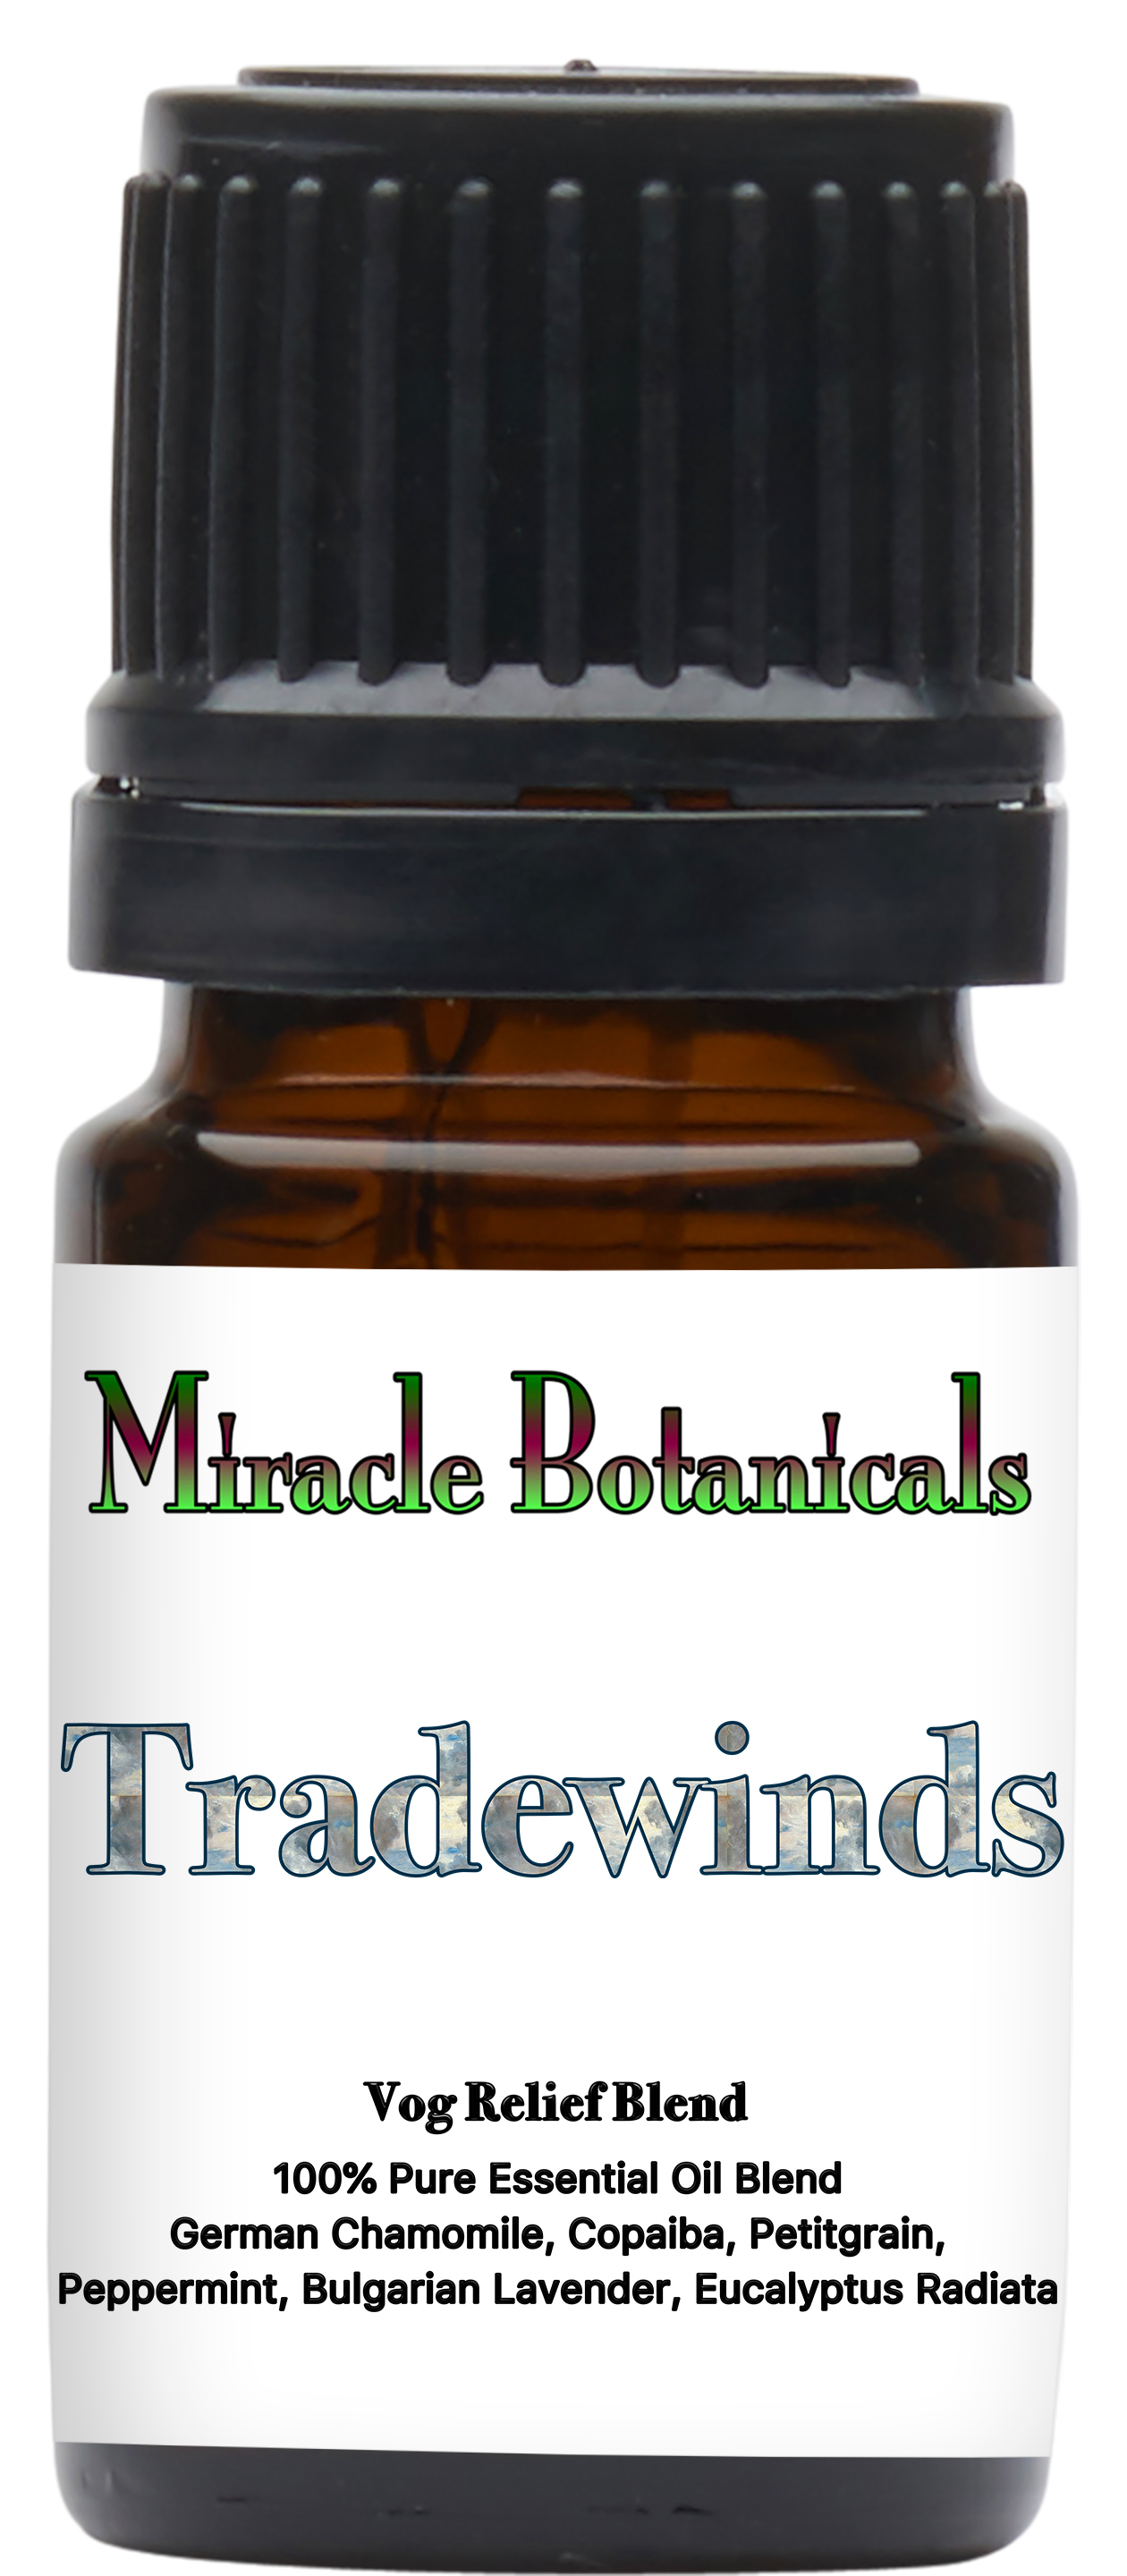 Tradewinds - 100% Pure Essential Oil Blend